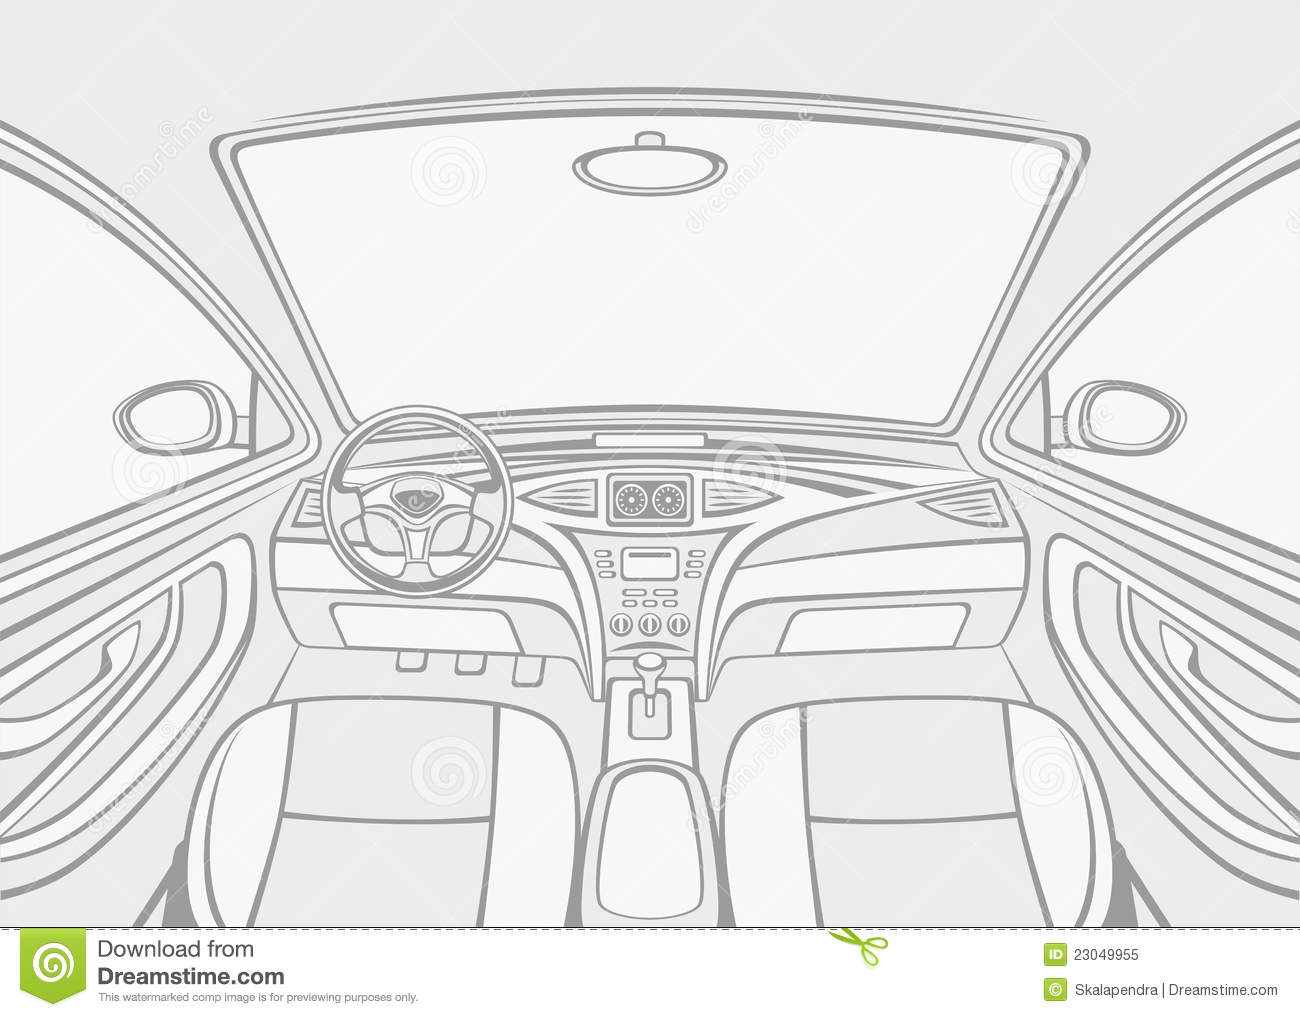 coloring pages car back view - photo#13